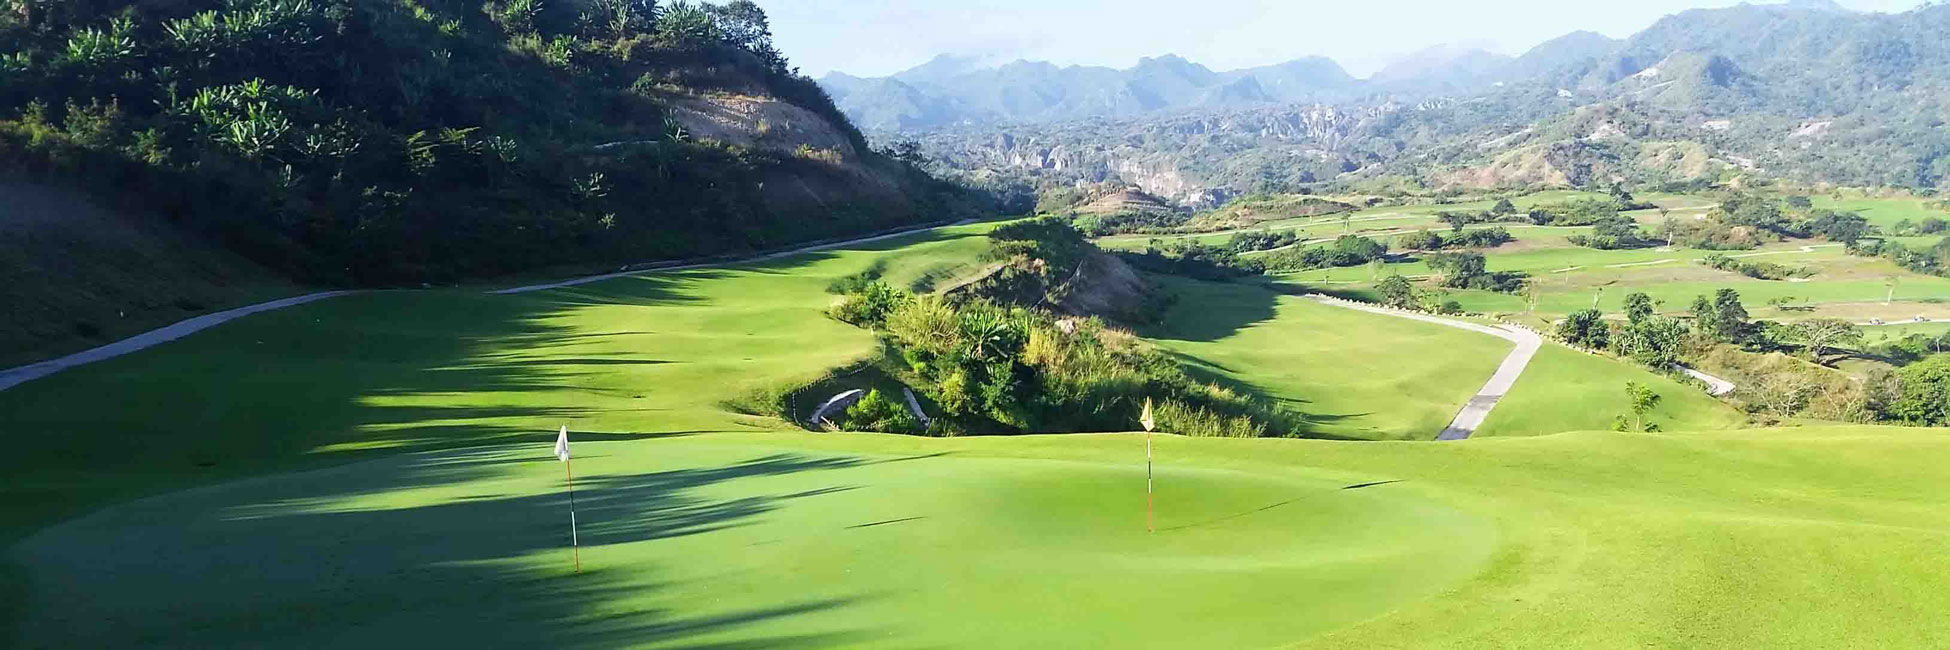 Philippines Golf Courses Golf Holidays In Philippines